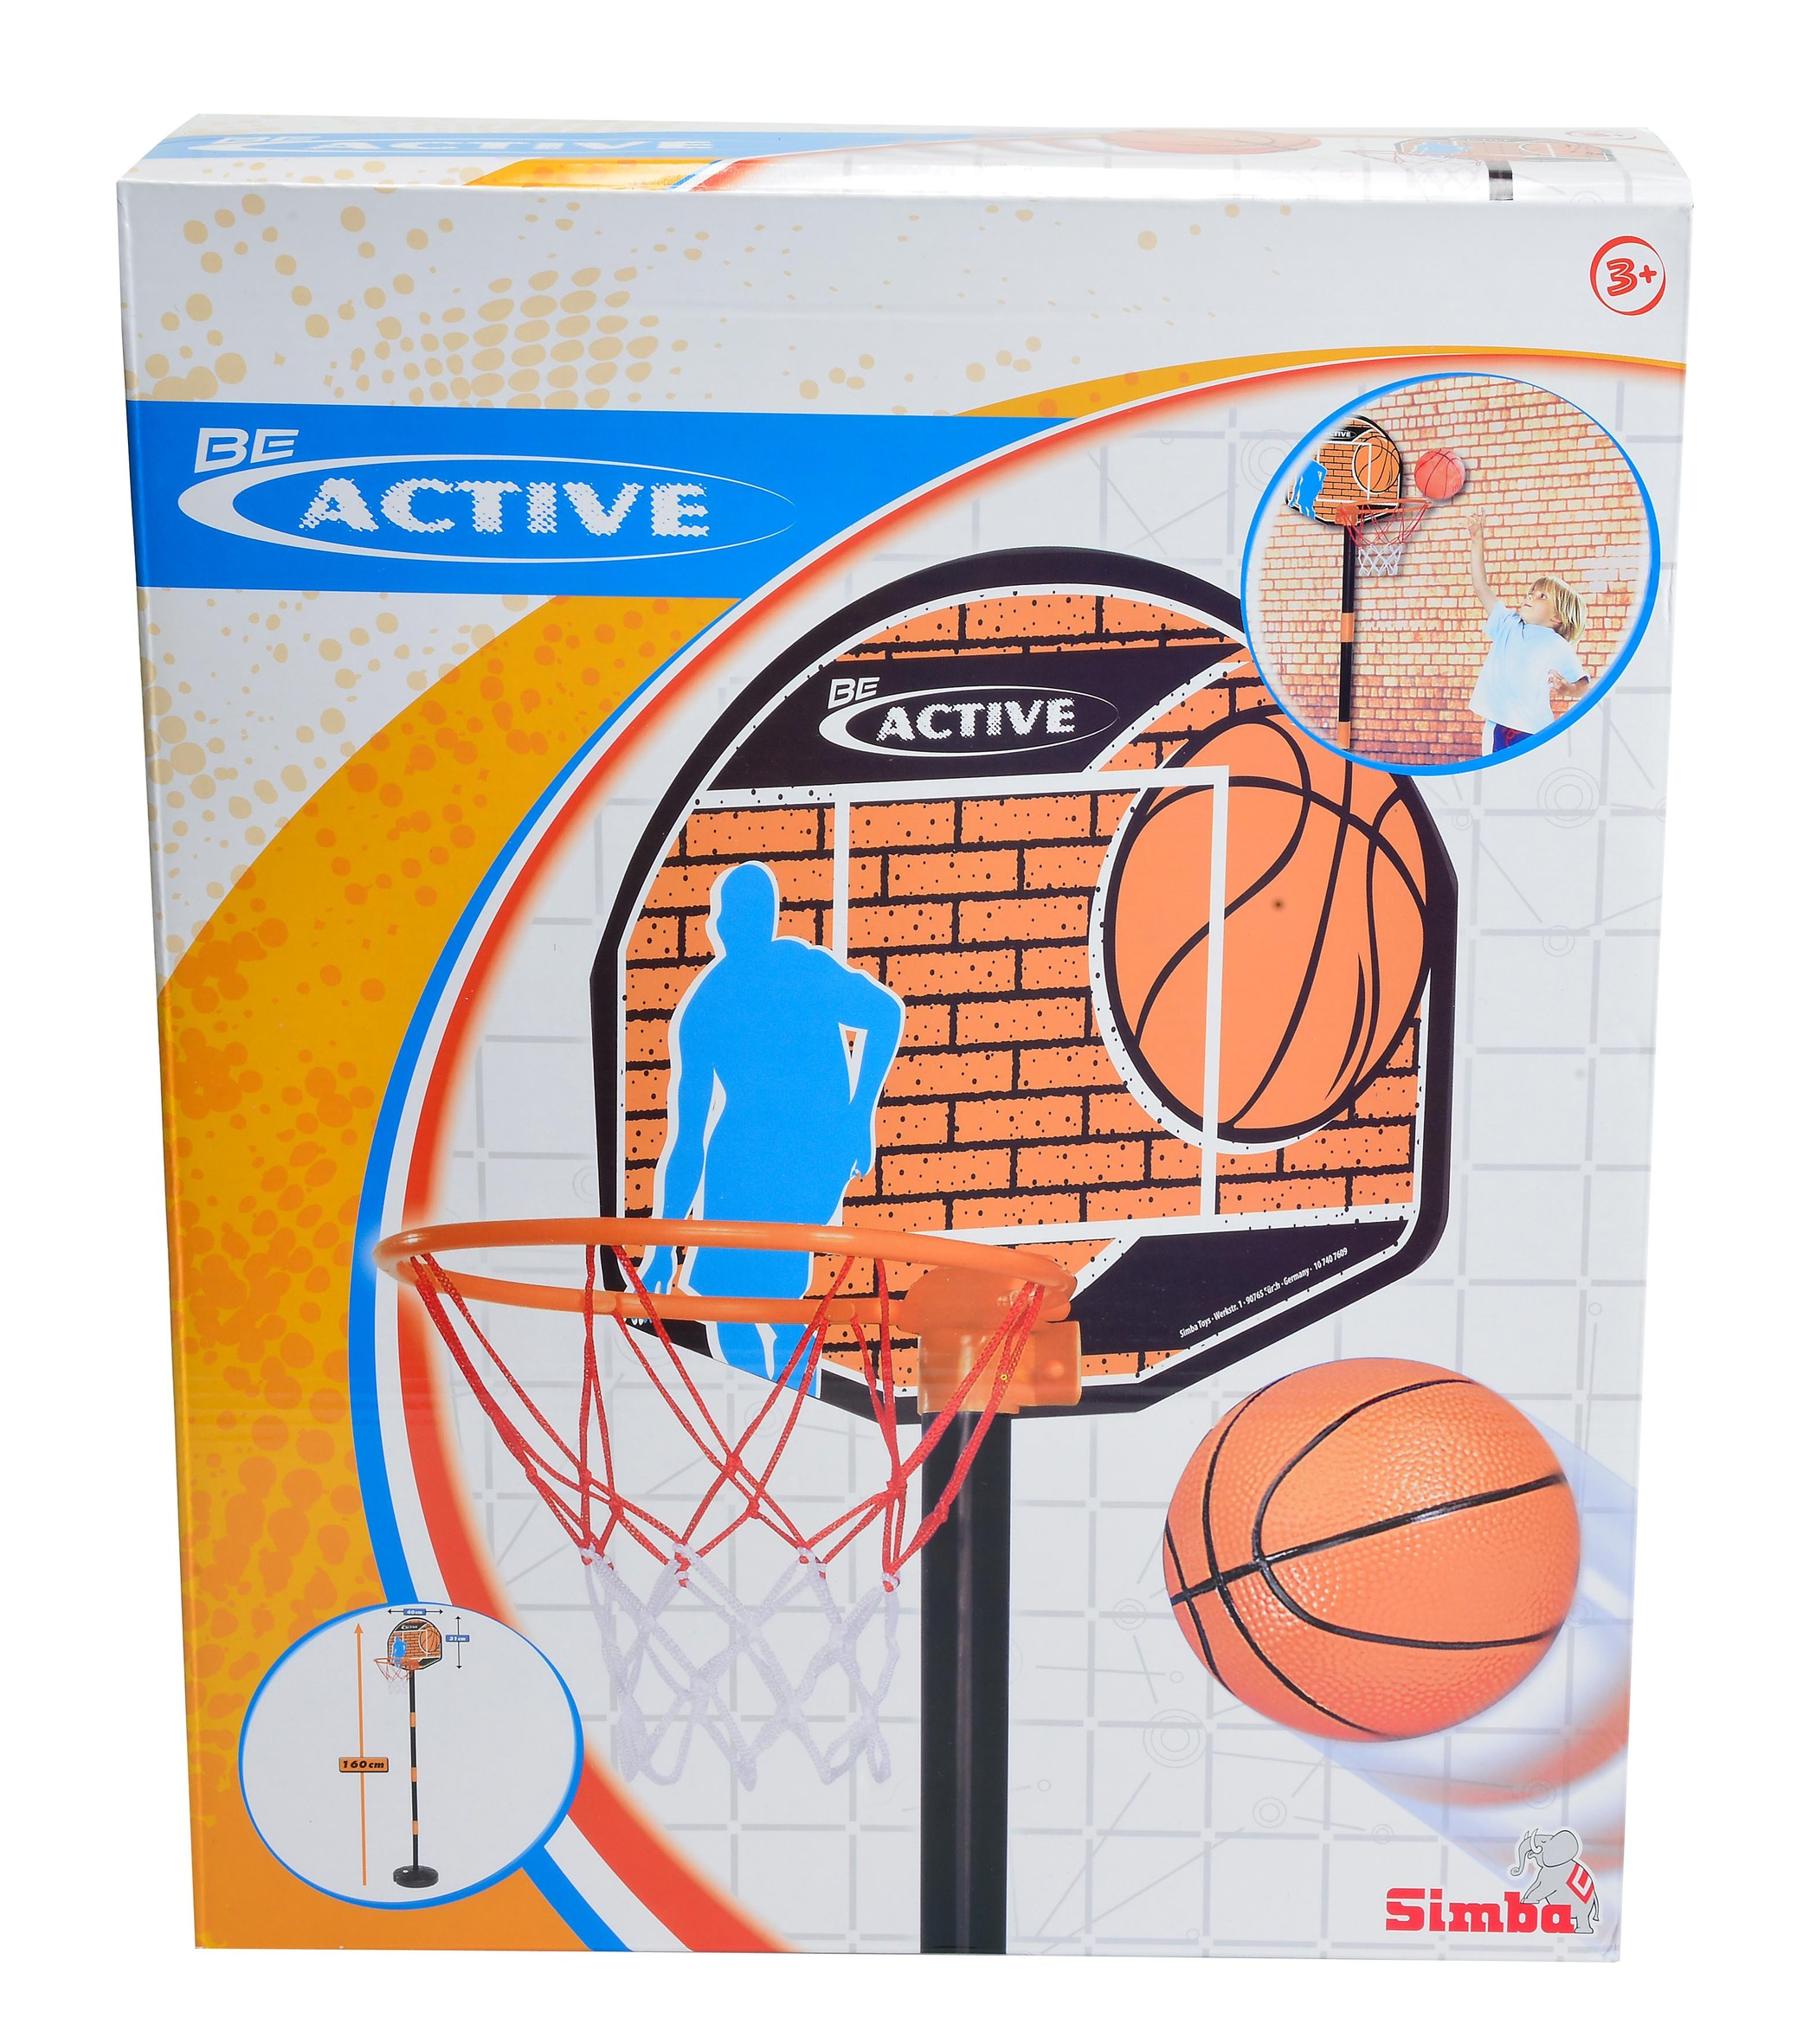 Simba Toy Basketball 7407609